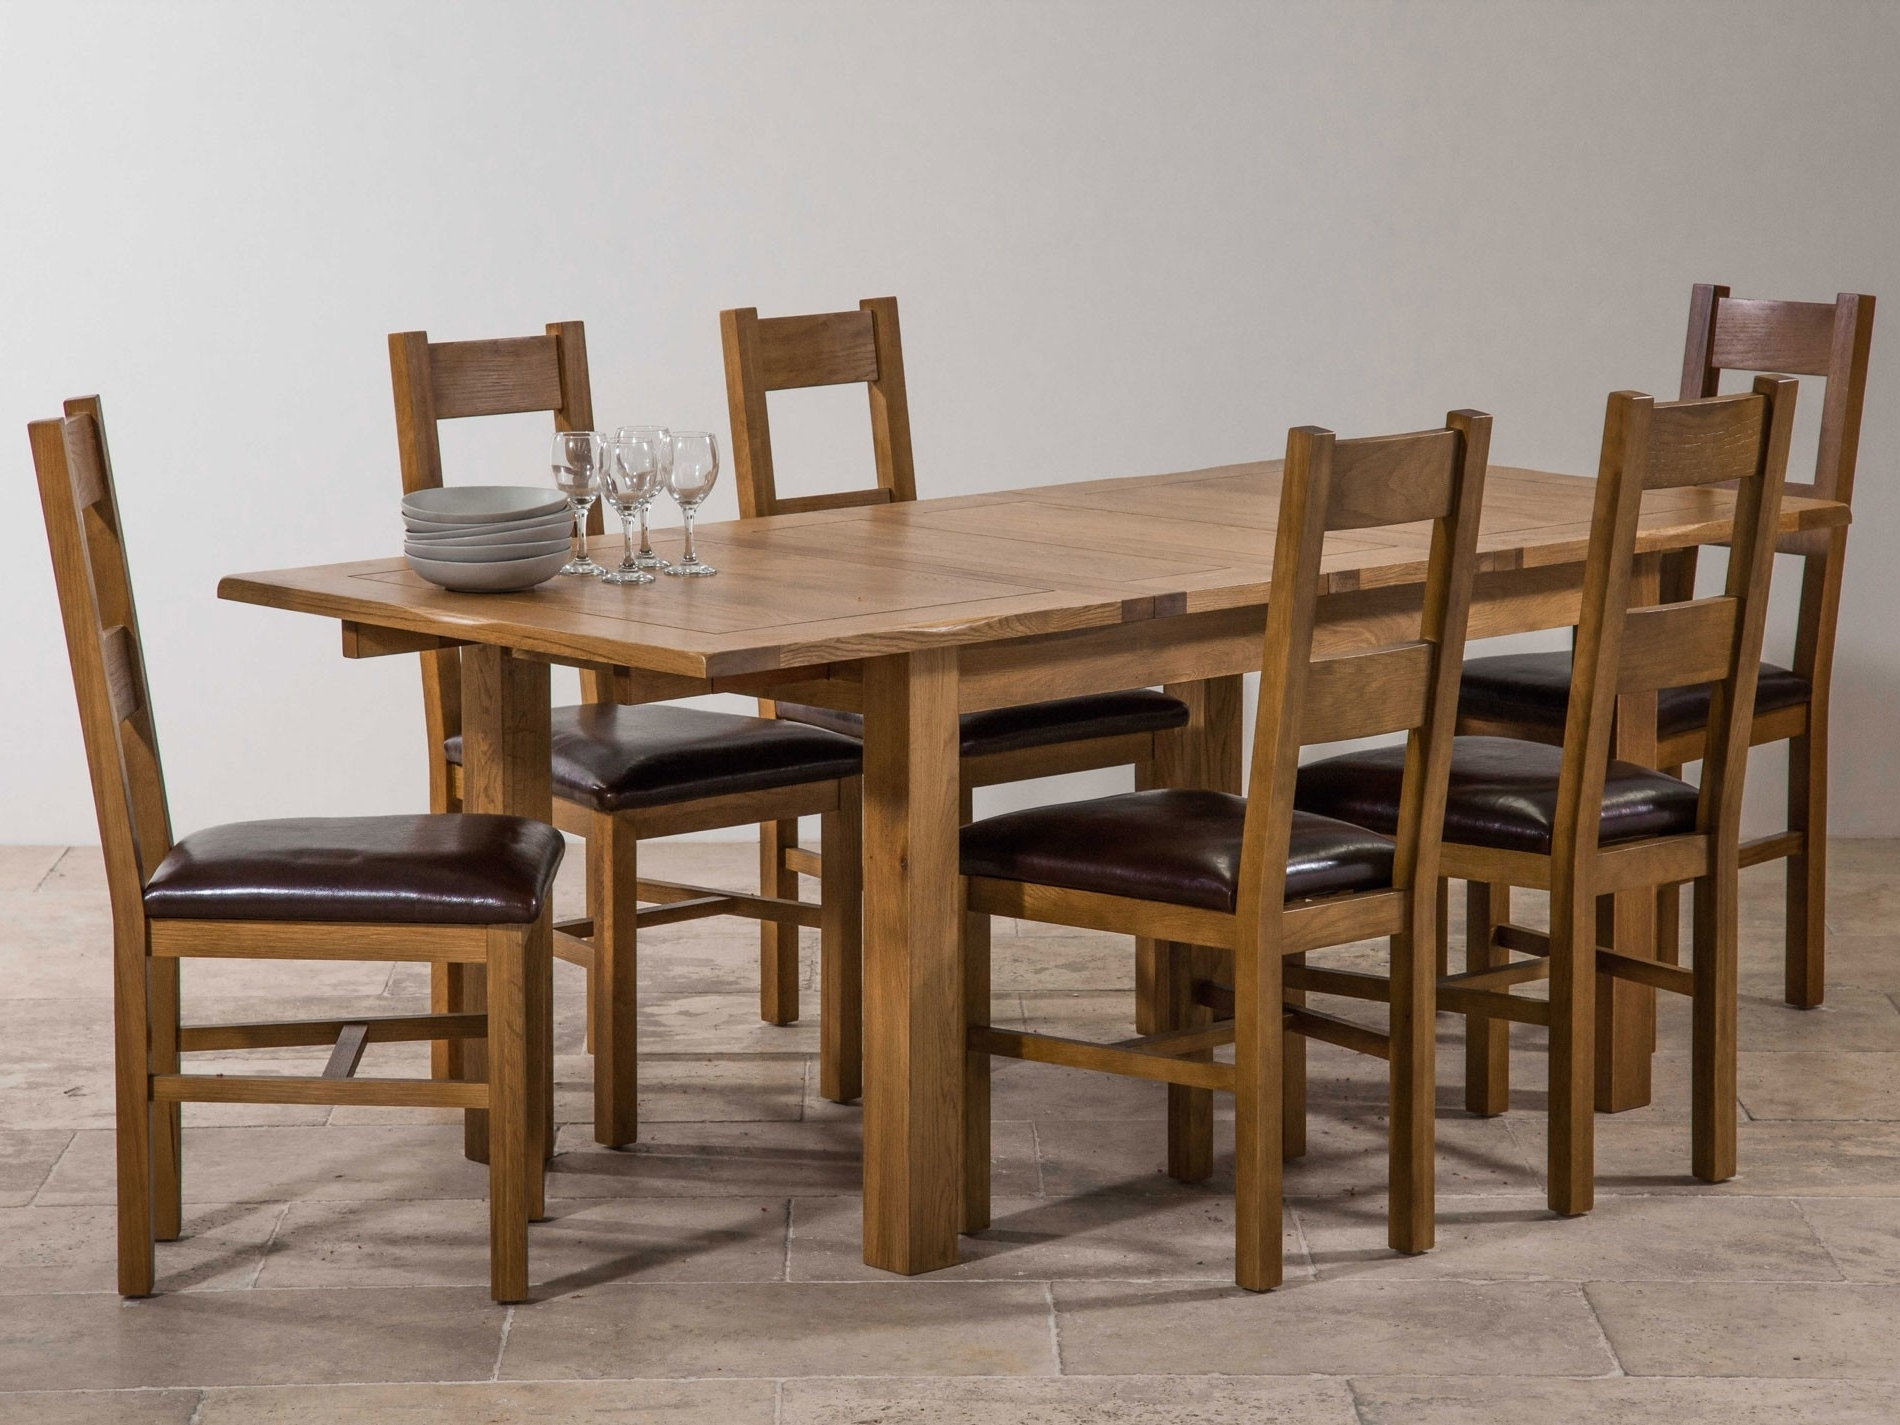 Square Extending Dining Table And Chairs Inspirational Masso Regarding Most Recently Released Oak Extending Dining Tables And Chairs (View 22 of 25)